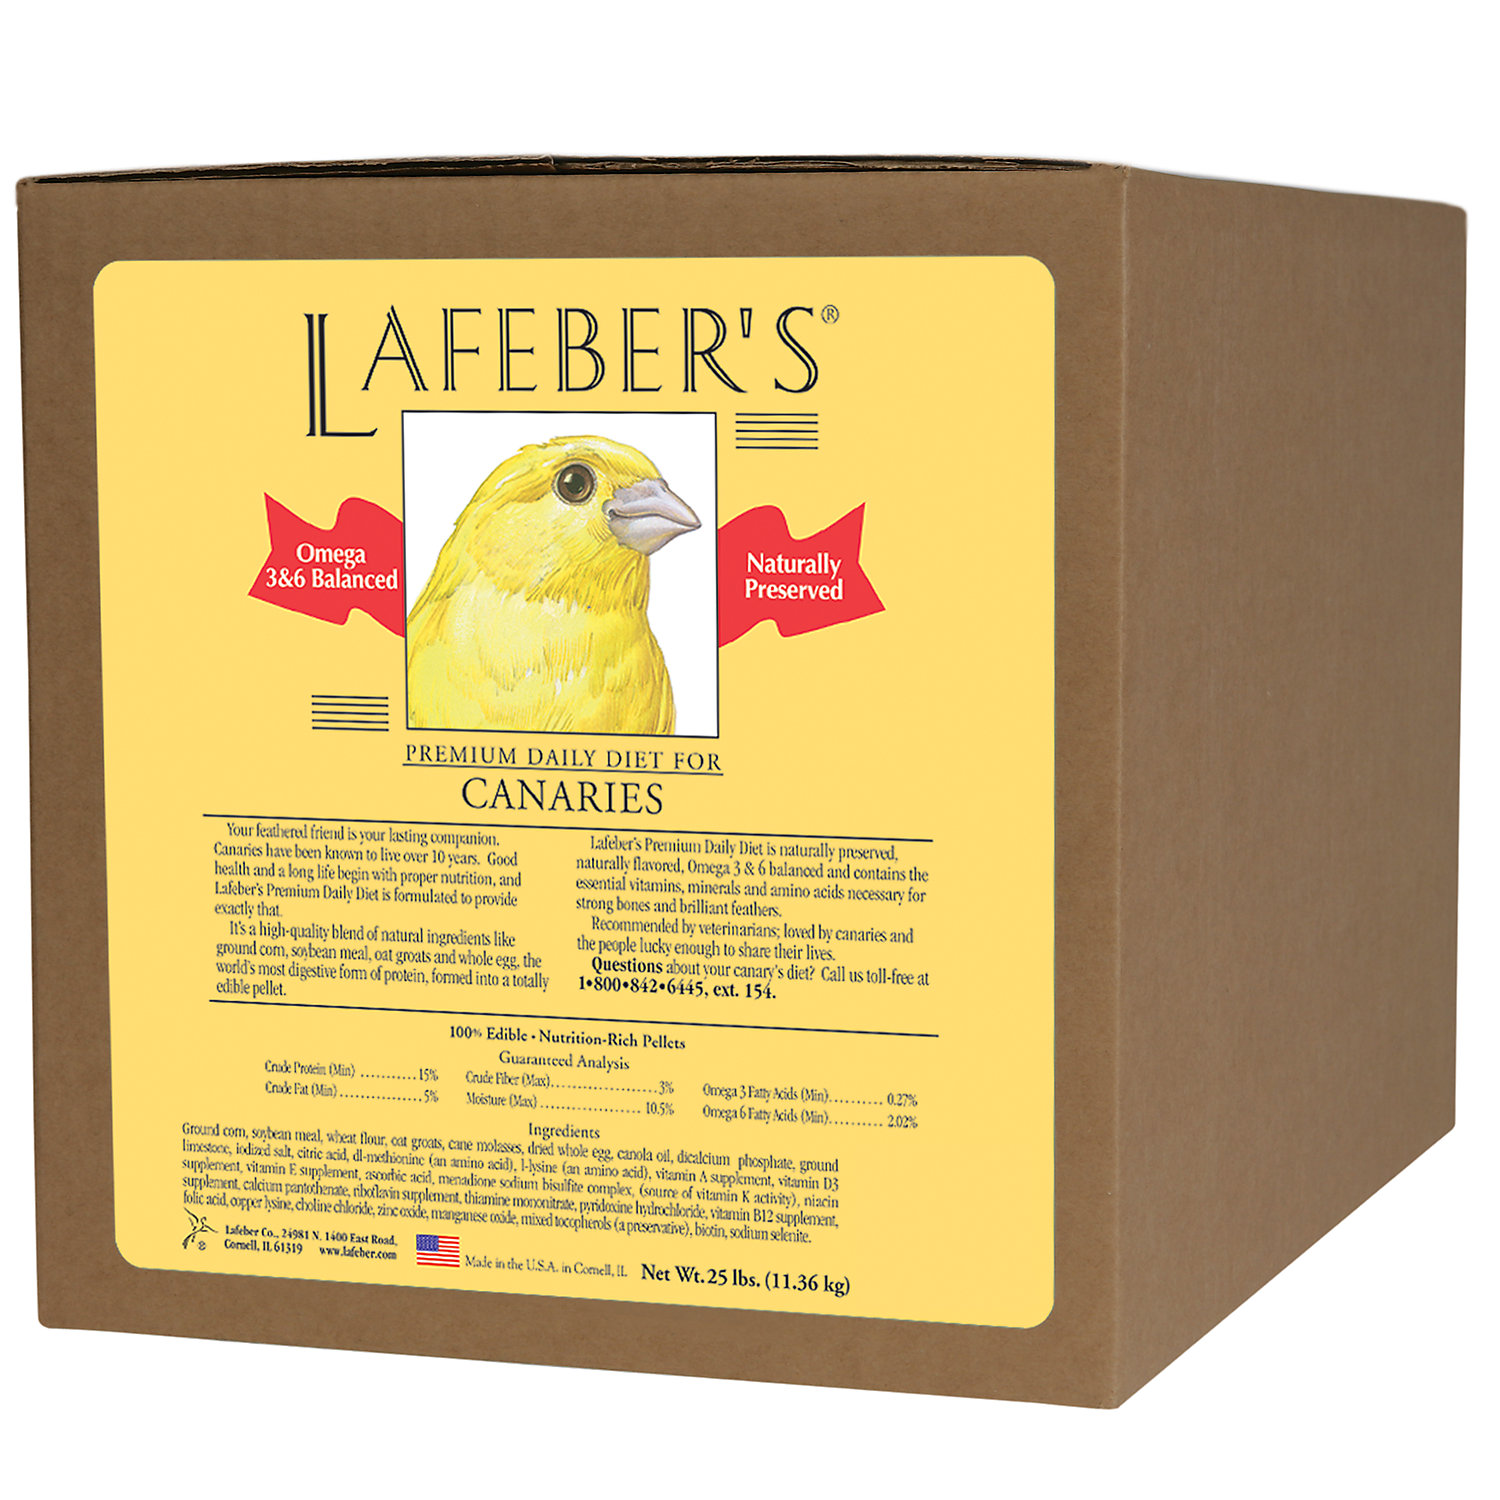 Lafebers Premium Daily Diet for Canaries 25 LB